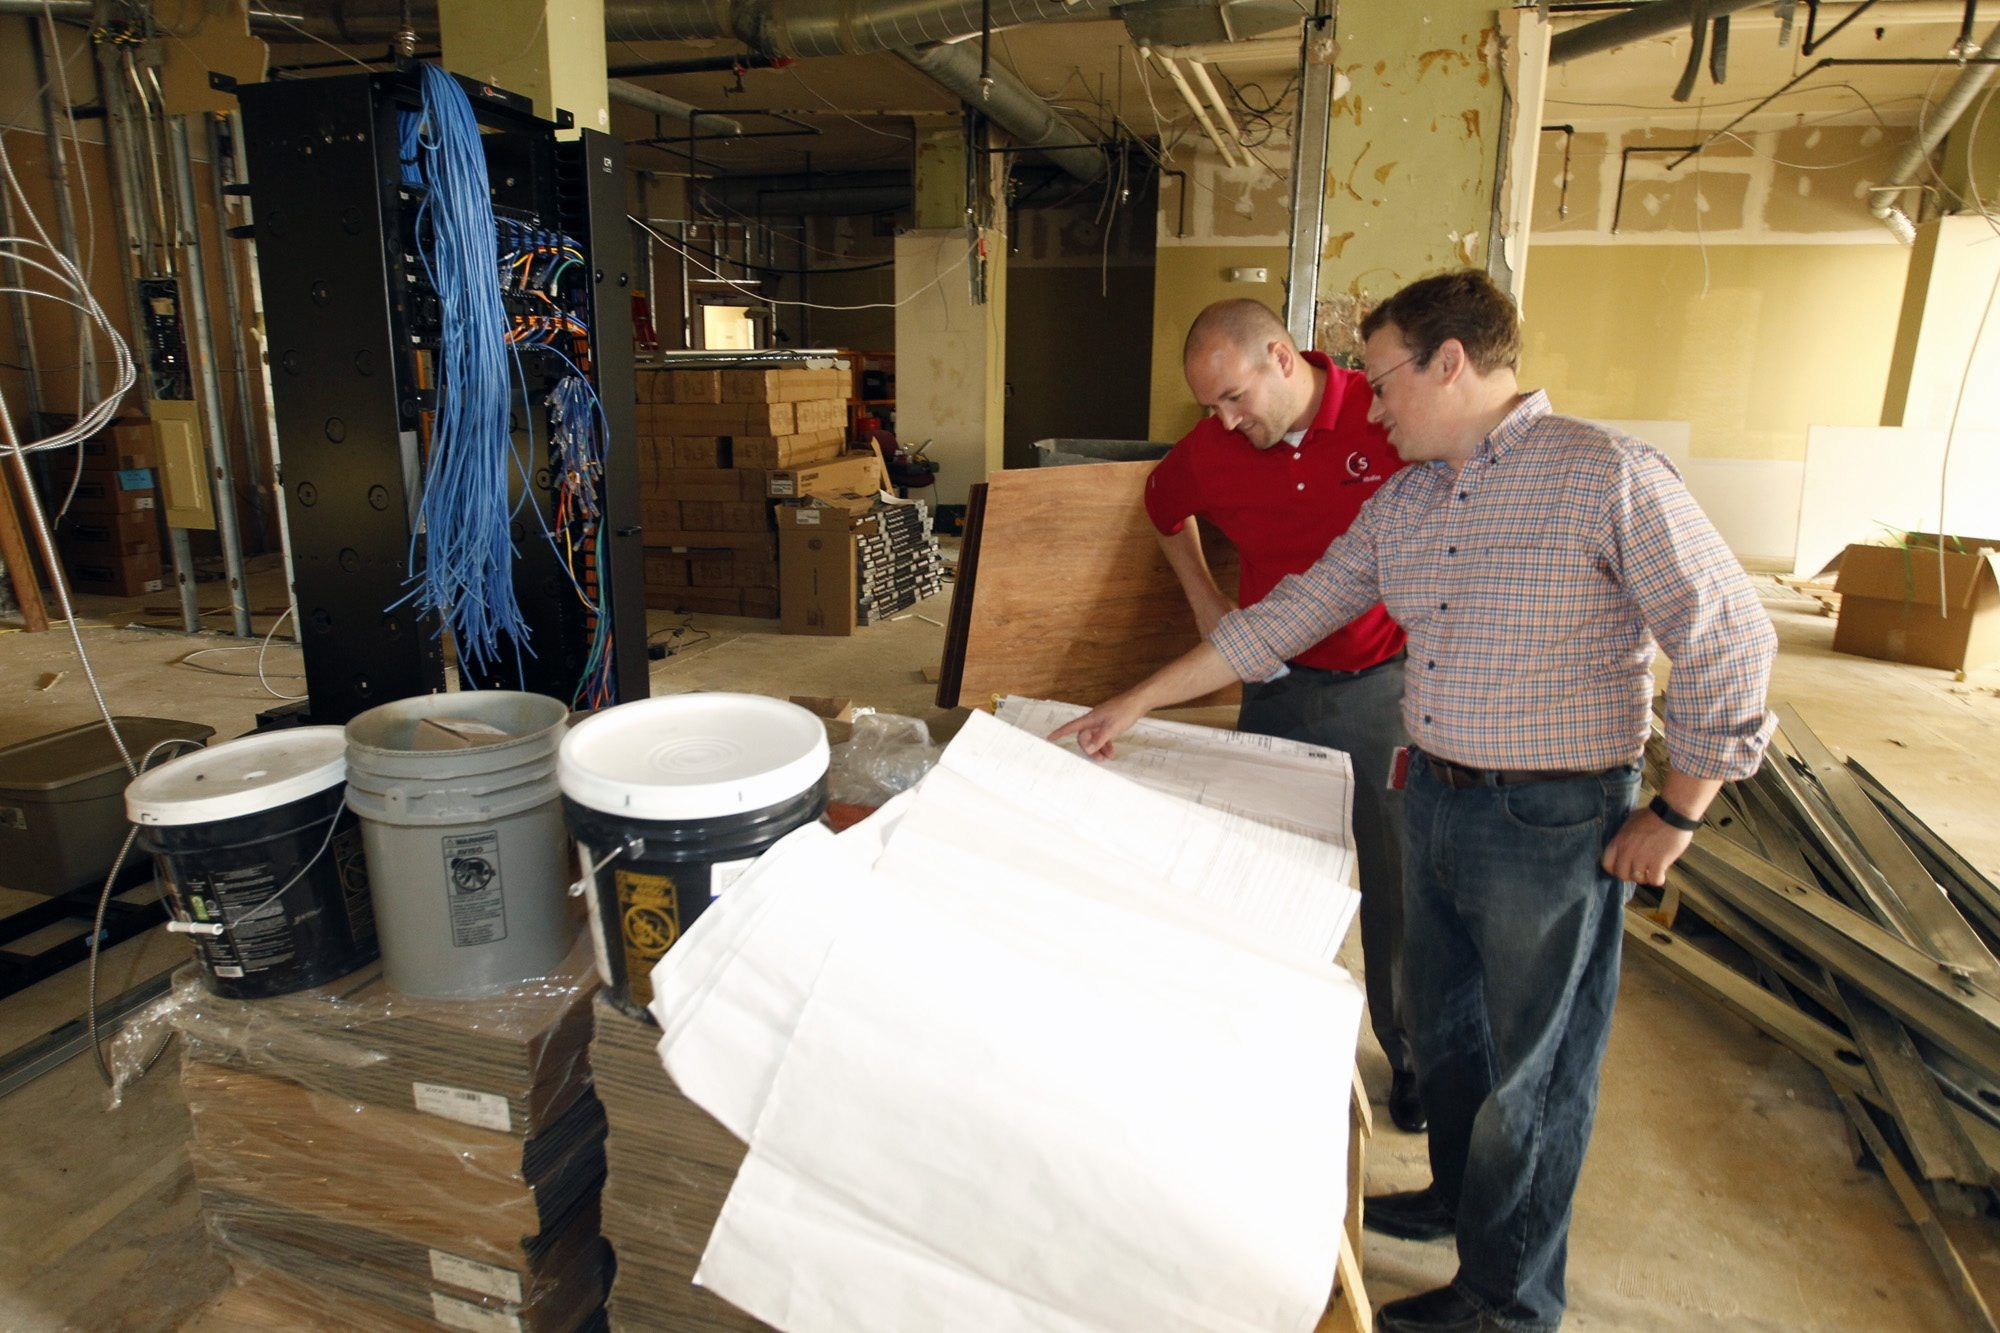 Steven M. Kiernan II, left, and Steven B. Raines, president and CEO, respectively, of Algonquin Studios, discuss plans in the company's space in the Brisbane Building. The 18,700-square-foot space is undergoing a $500,000 to $600,000 renovation.